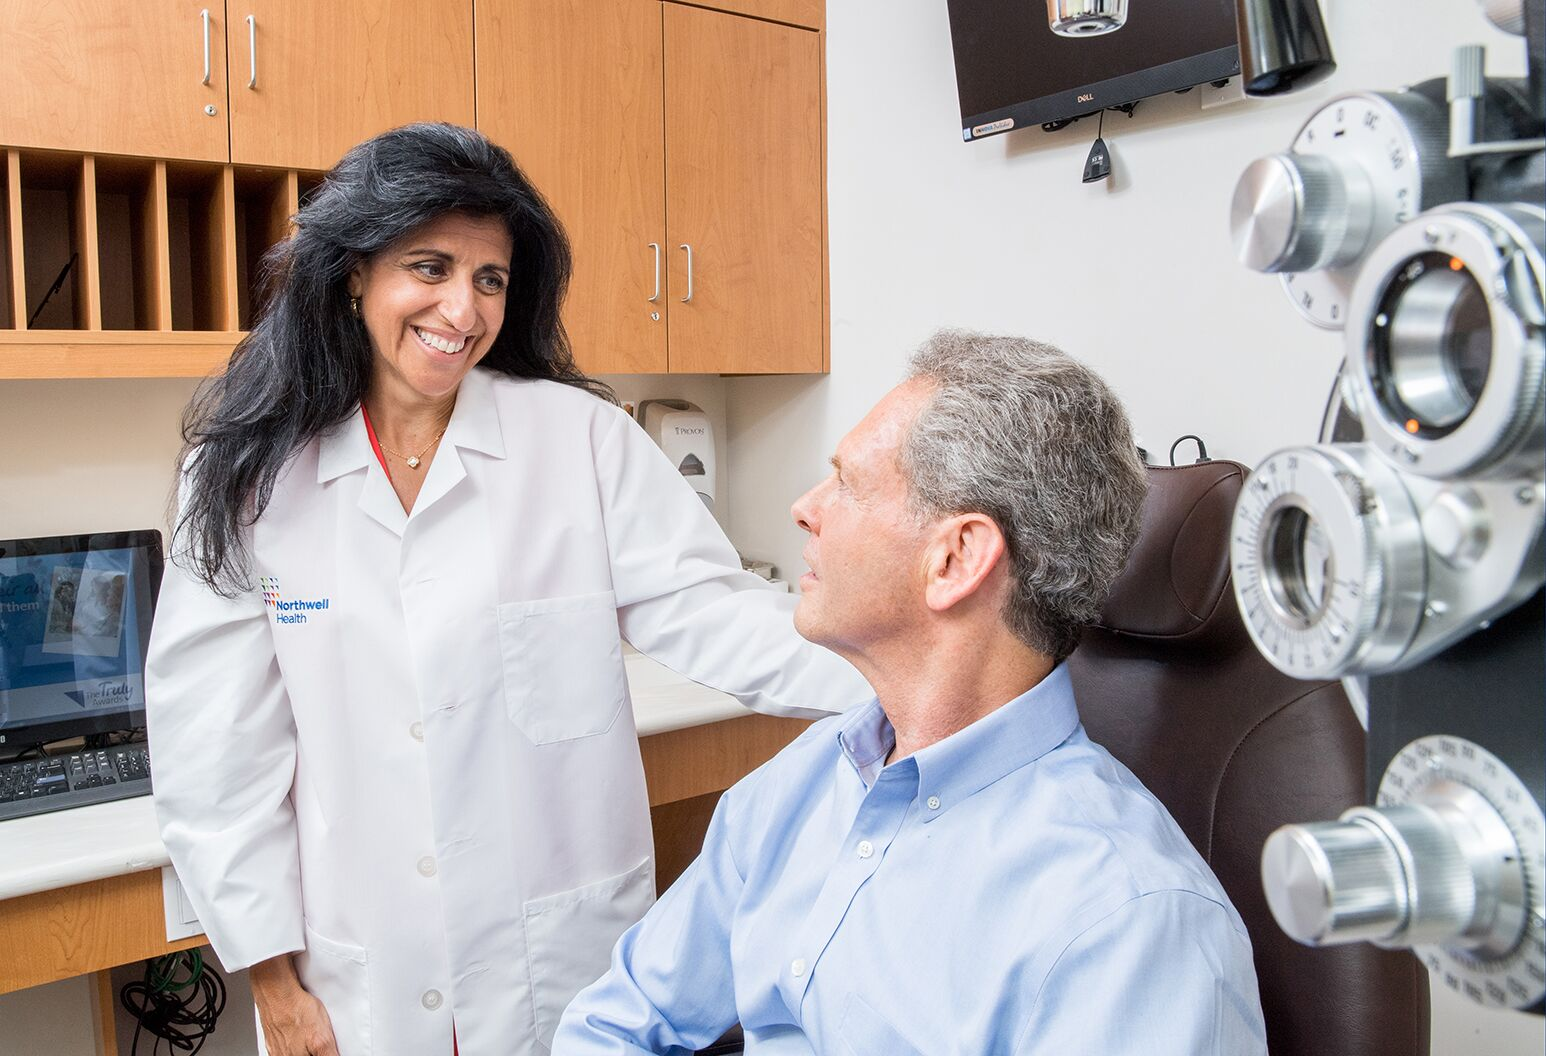 Eye physician smiling at patient who is sitting in exam room chair.